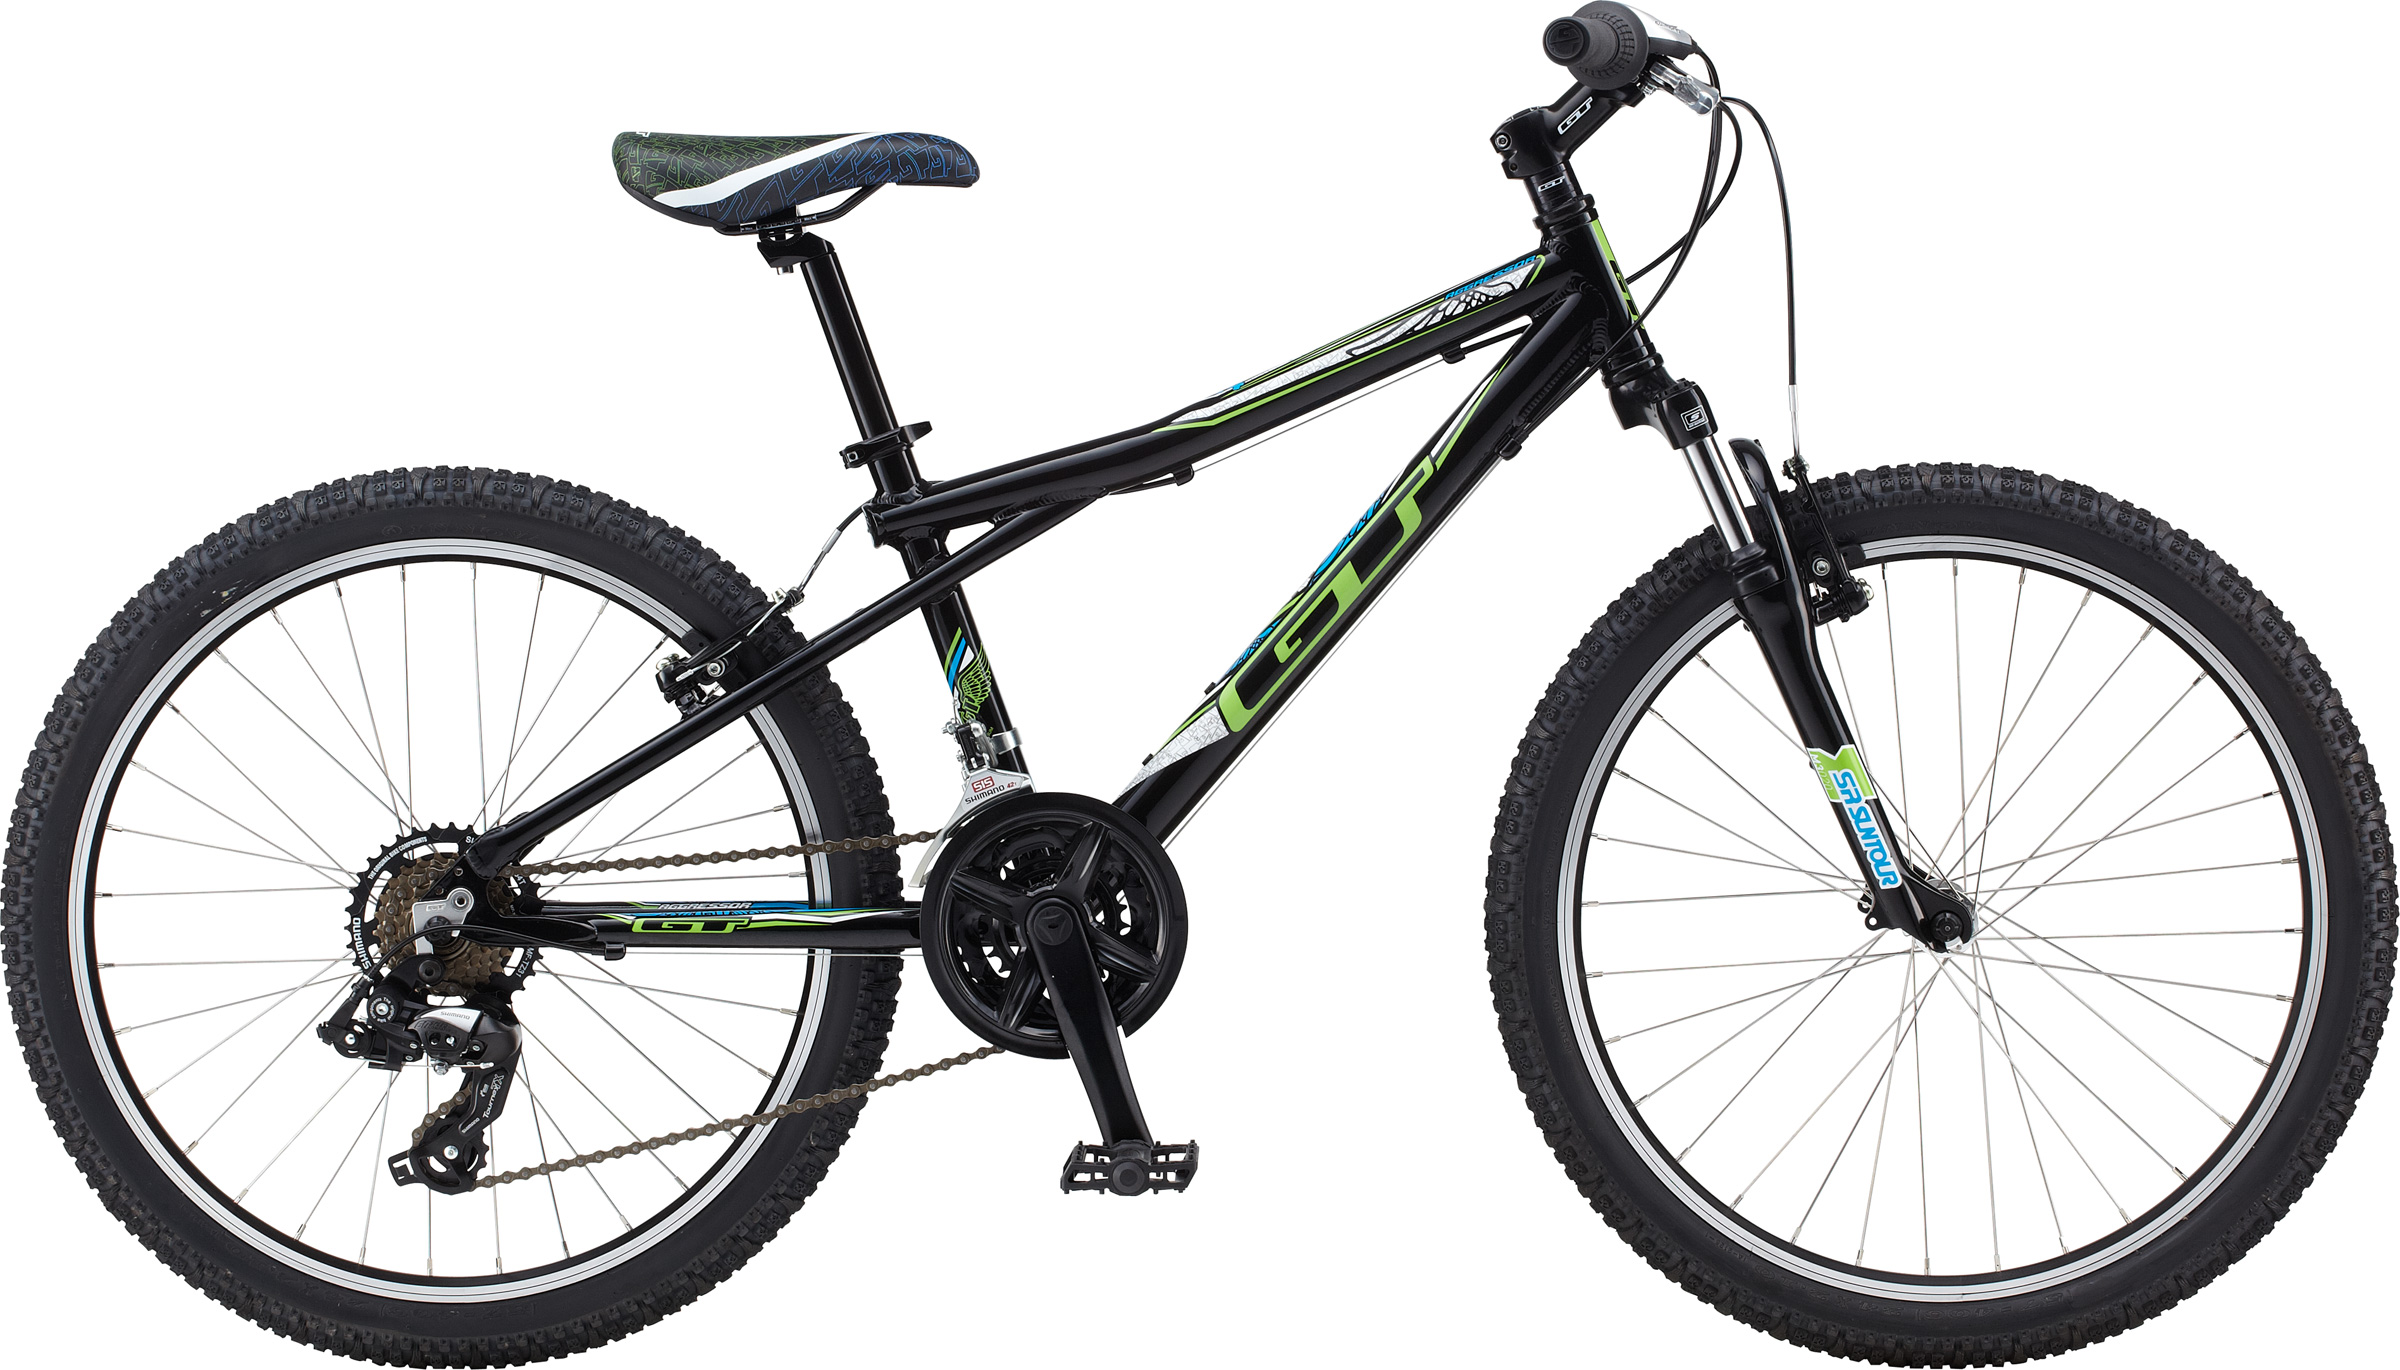 Gt Aggressor 24 Inch Bikes Parts Accessories And Clothing